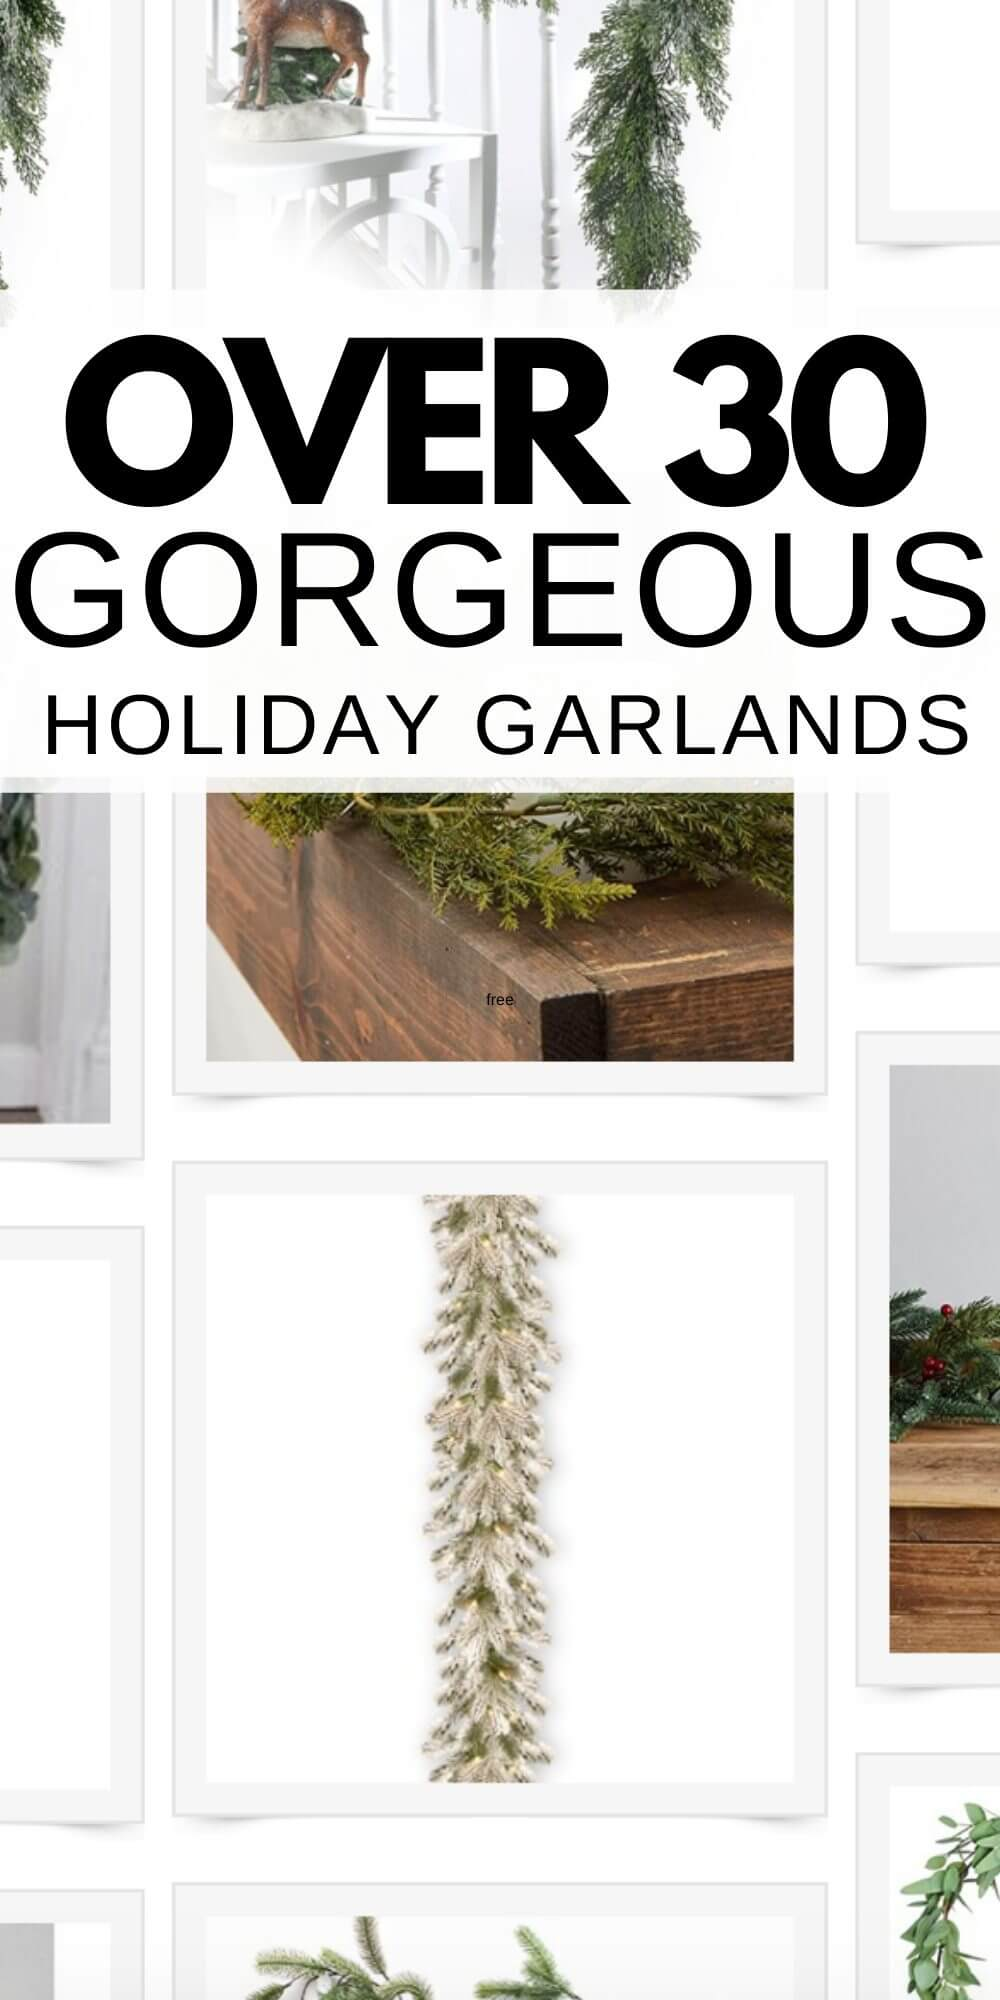 Hard to find beautiful faux garland? No fear! I have over 30 gorgeous artificial garland options for your home to use this holiday season!